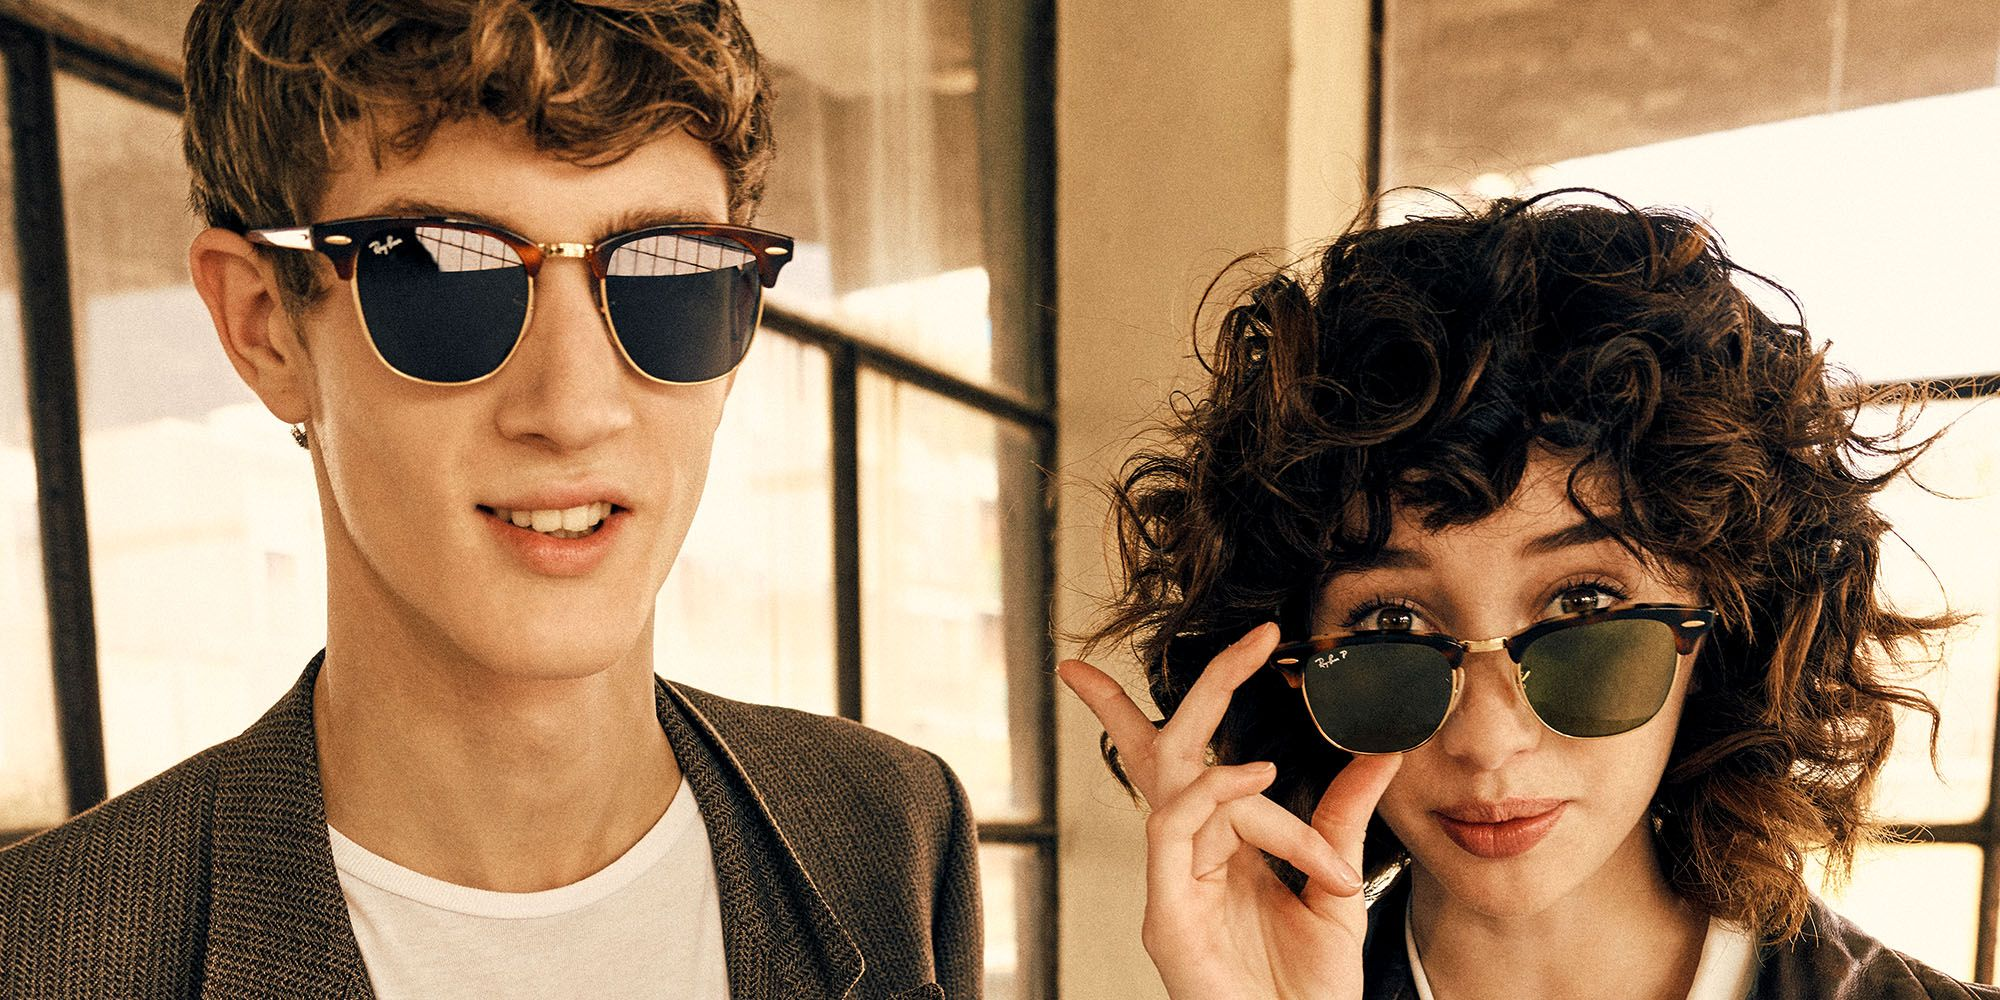 Ray-Ban is Bringing Back Its Classics - Ray-Ban Relaunches Clubmasters 2621c81c3